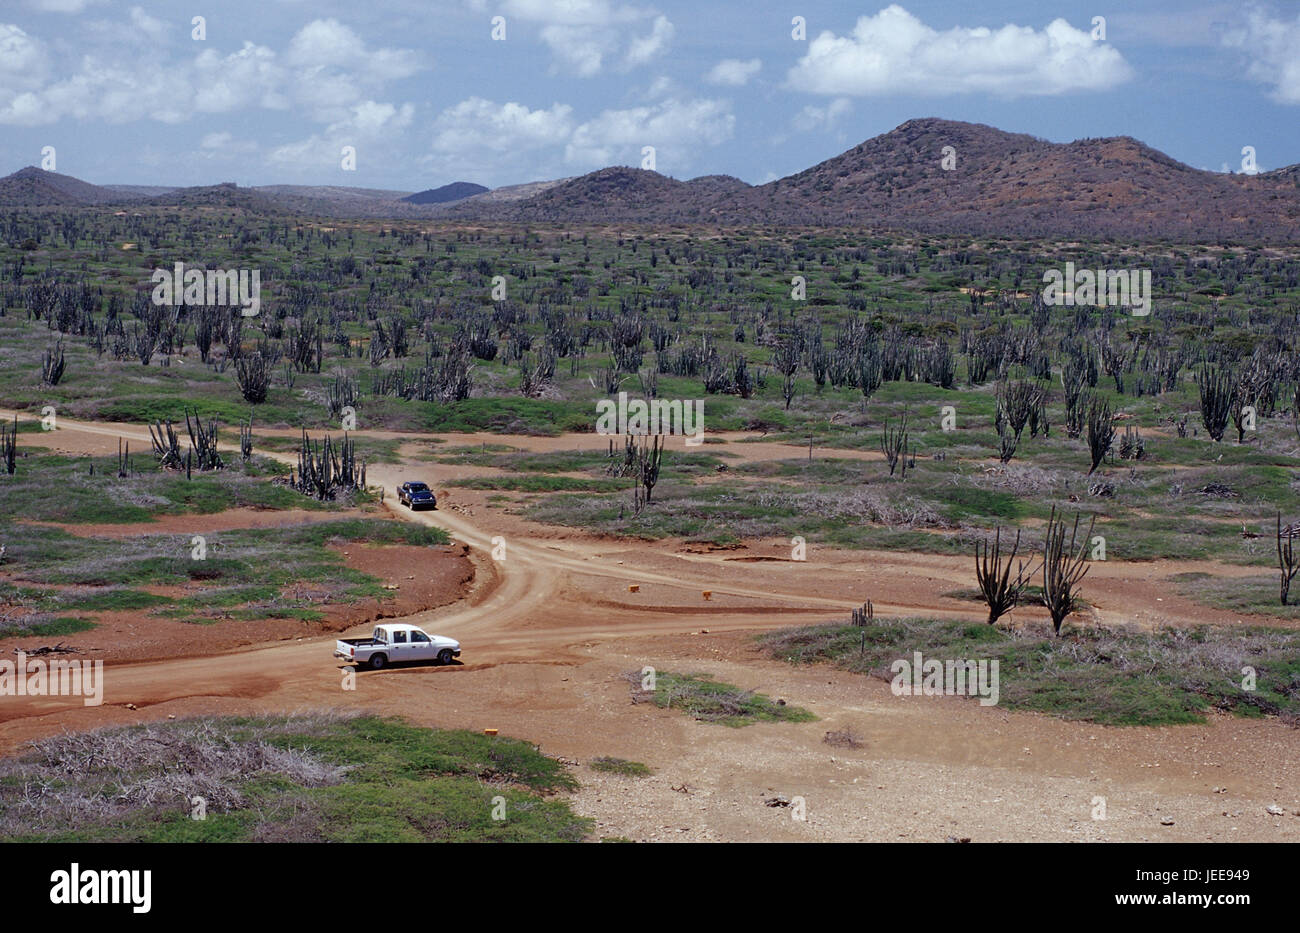 Wild scenery, the Caribbean, voucher airs, 'Washington Slagbaai national park', street, vehicle, - Stock Image